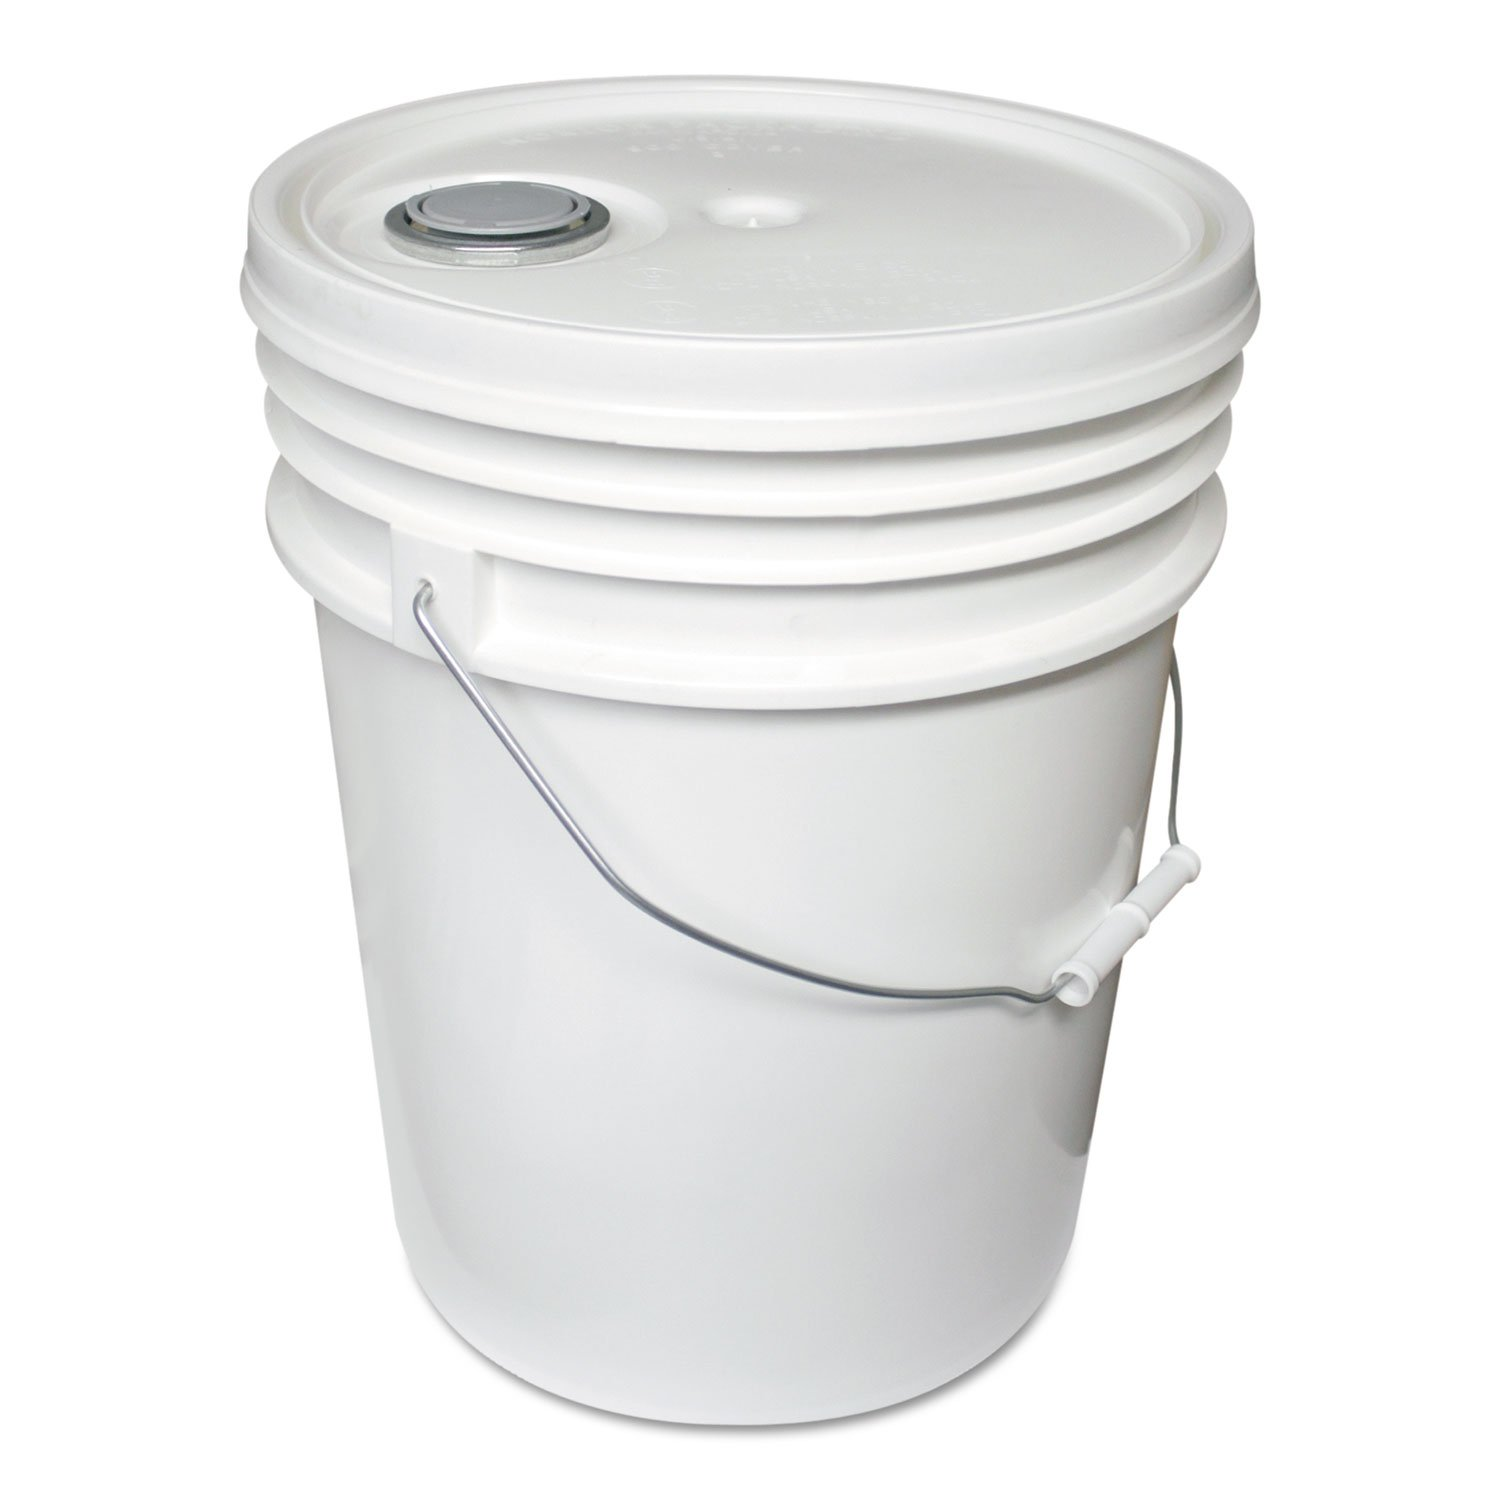 Impact 5515 Polyethylene Pail with Lid, 5 Gallon Capacity, 14-1/2'' Height x 1-1/4'' Depth, White (Case of 5)